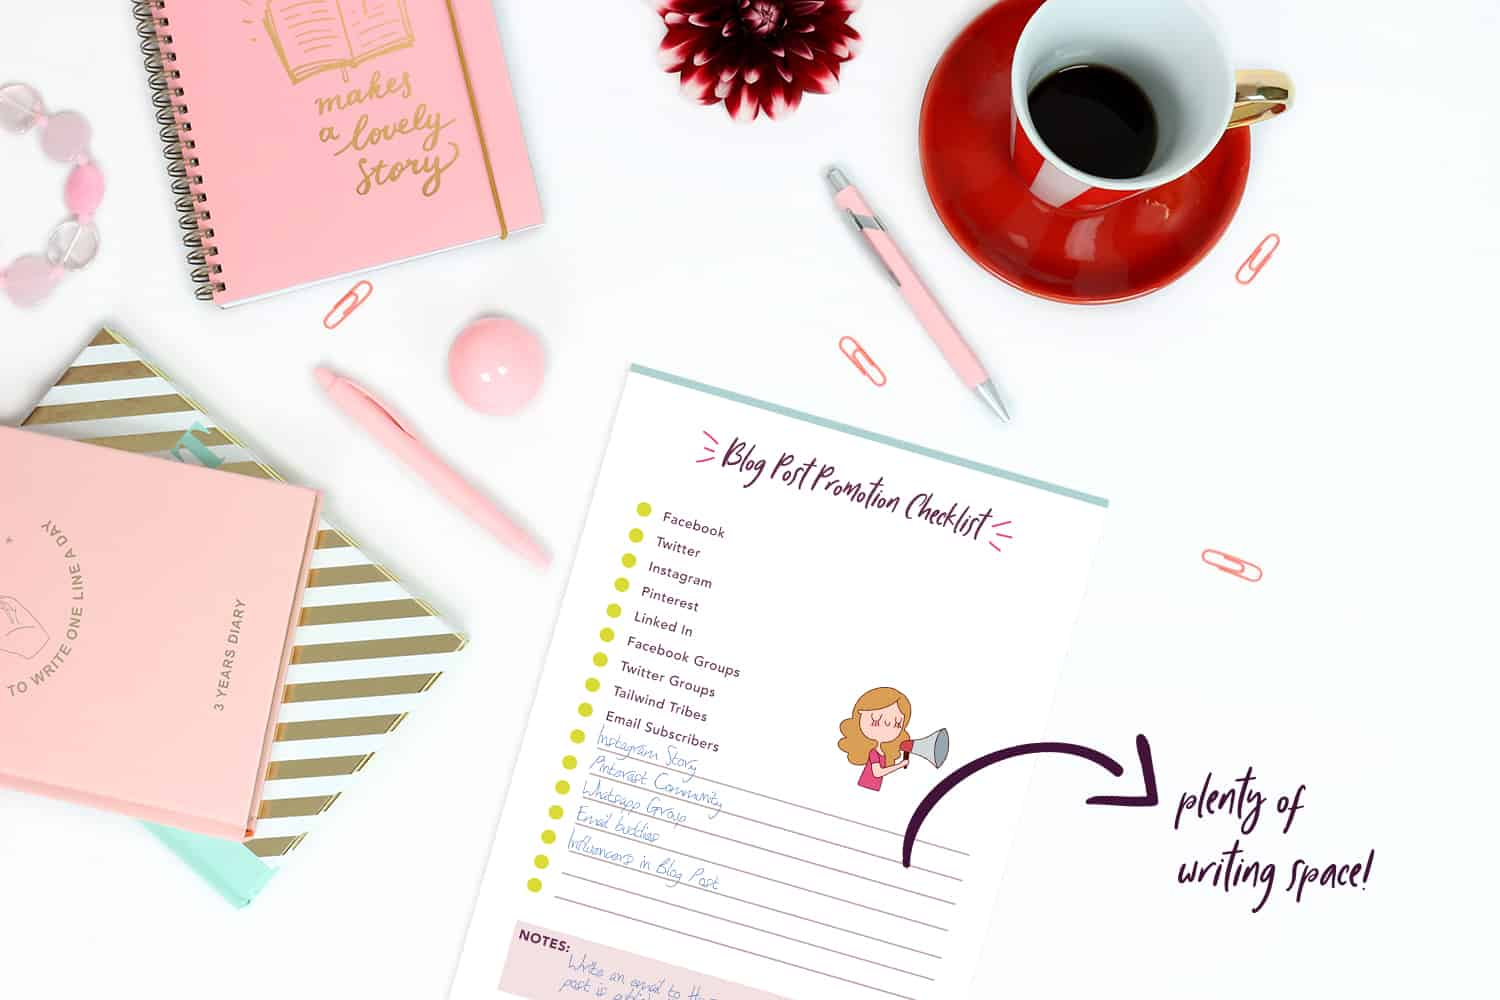 The key to having a good blog content strategy is to decide what newsletters you will send in advance. This Blog Planner will really help you set your Blog in order!